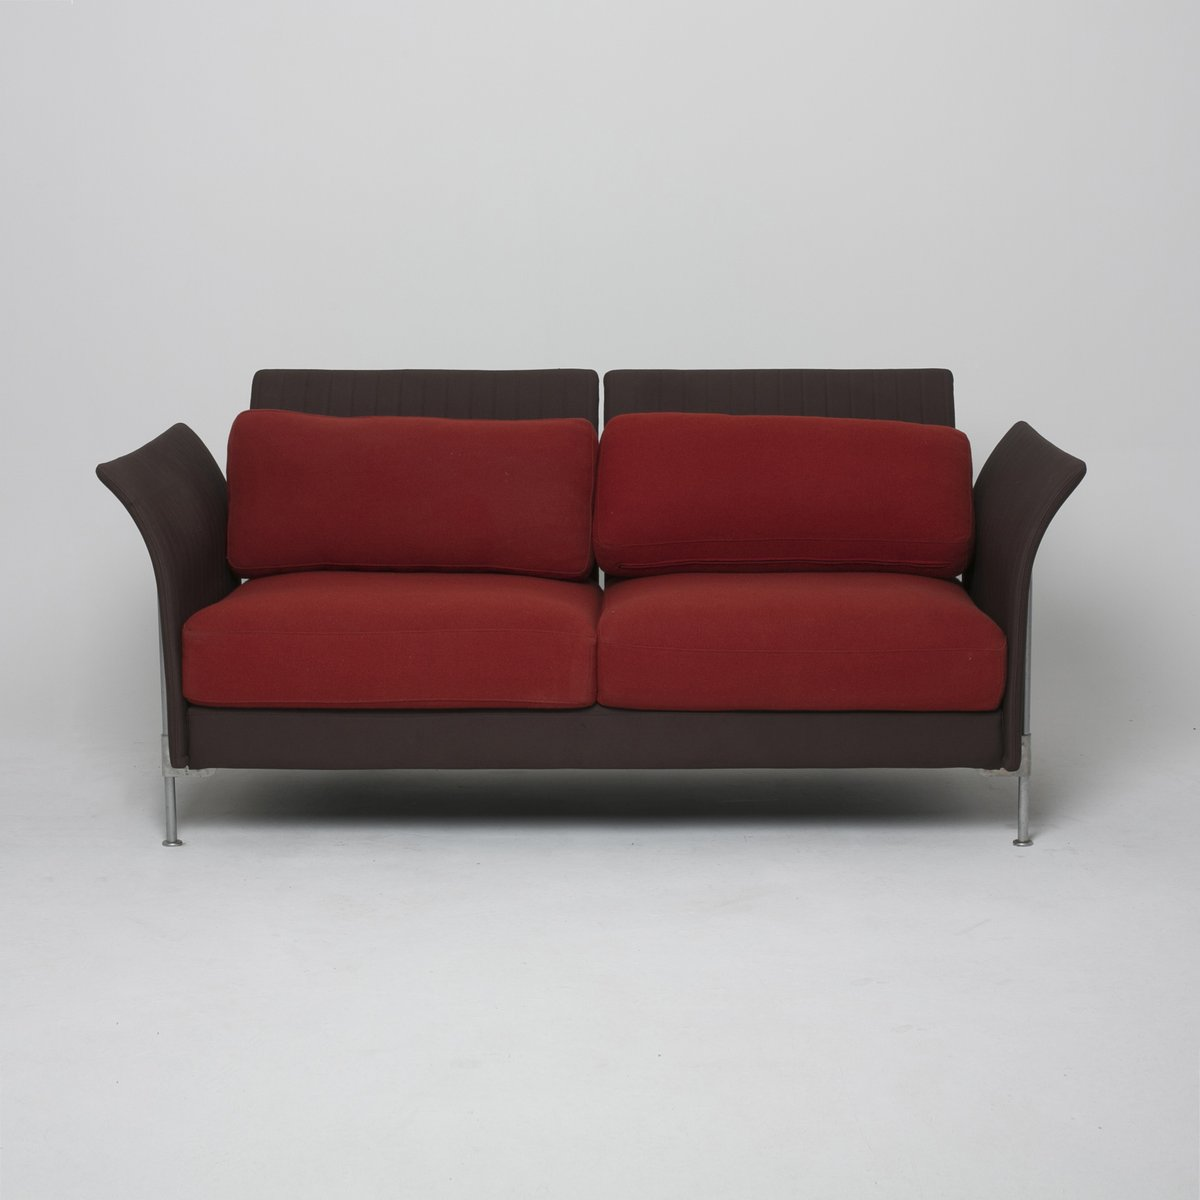 canap sofa von ronan erwan bouroullec f r vitra bei pamono kaufen. Black Bedroom Furniture Sets. Home Design Ideas